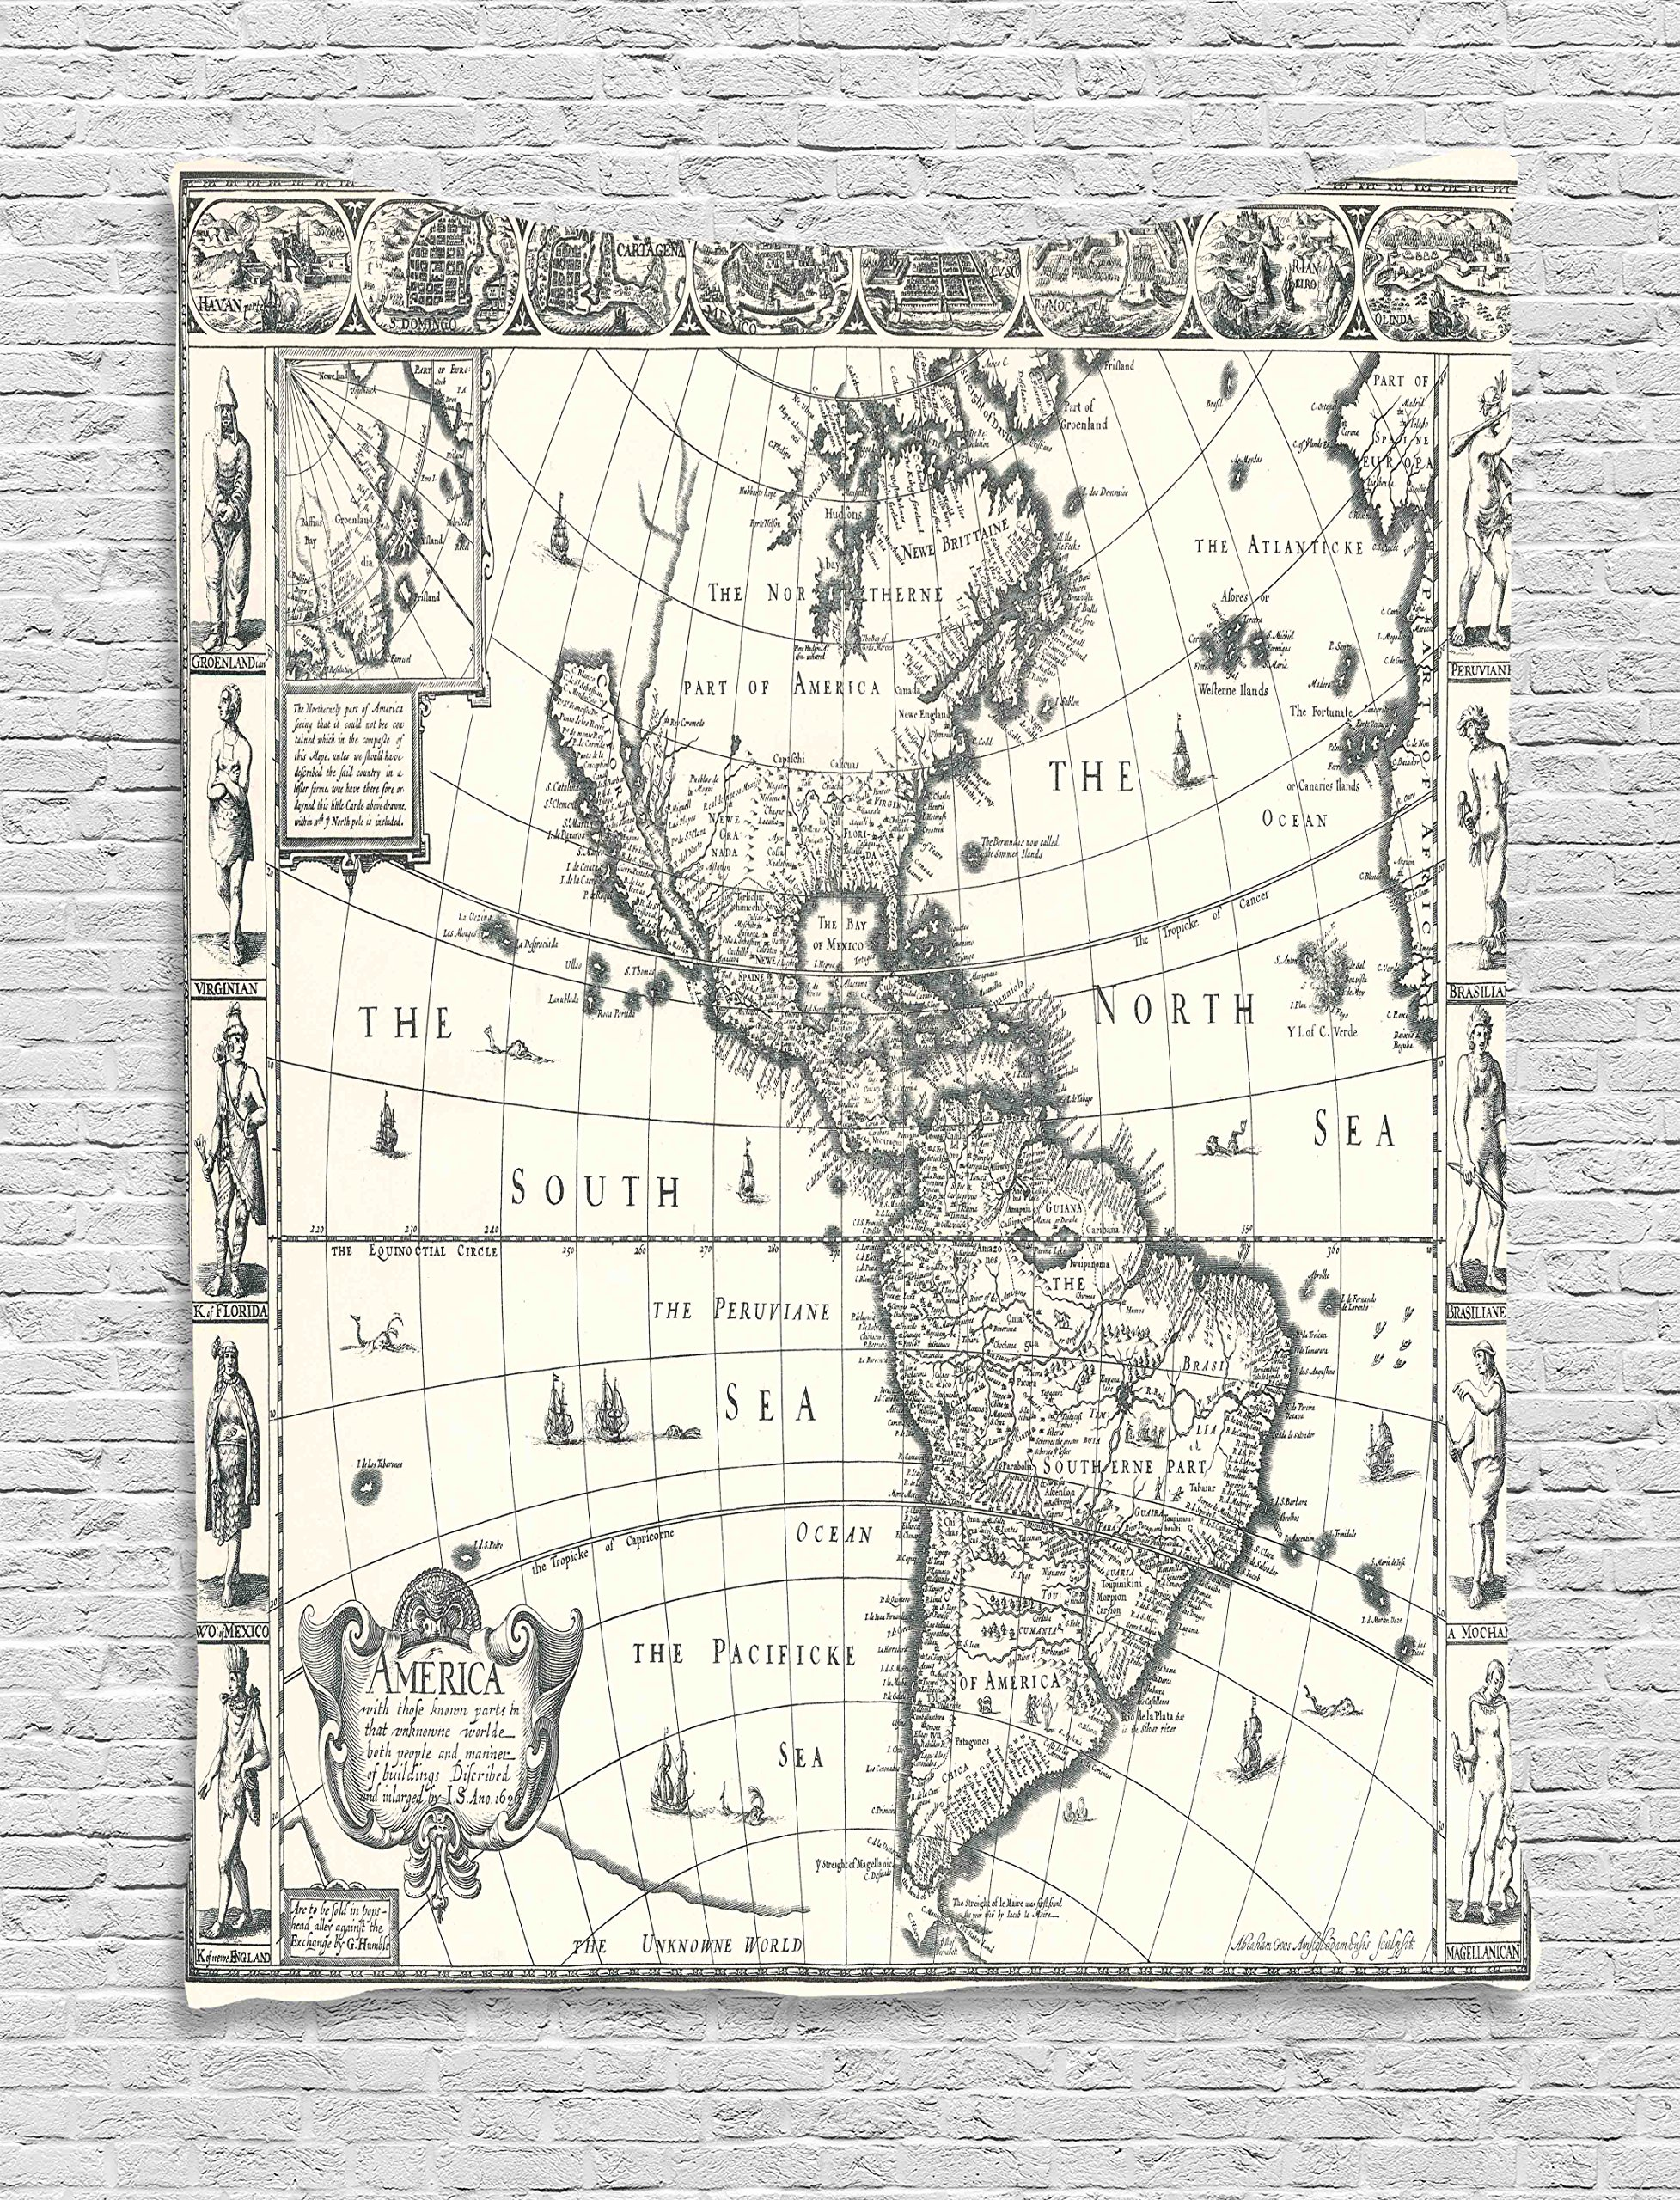 Ambesonne Map Tapestry Vintage Decor, Image of Antique Map America in 1600s World in Medieval Time Ancient Era Retro Home Decor, Bedroom Living Room Dorm Wall Hanging, 40 x 60 inches, Grey Beige